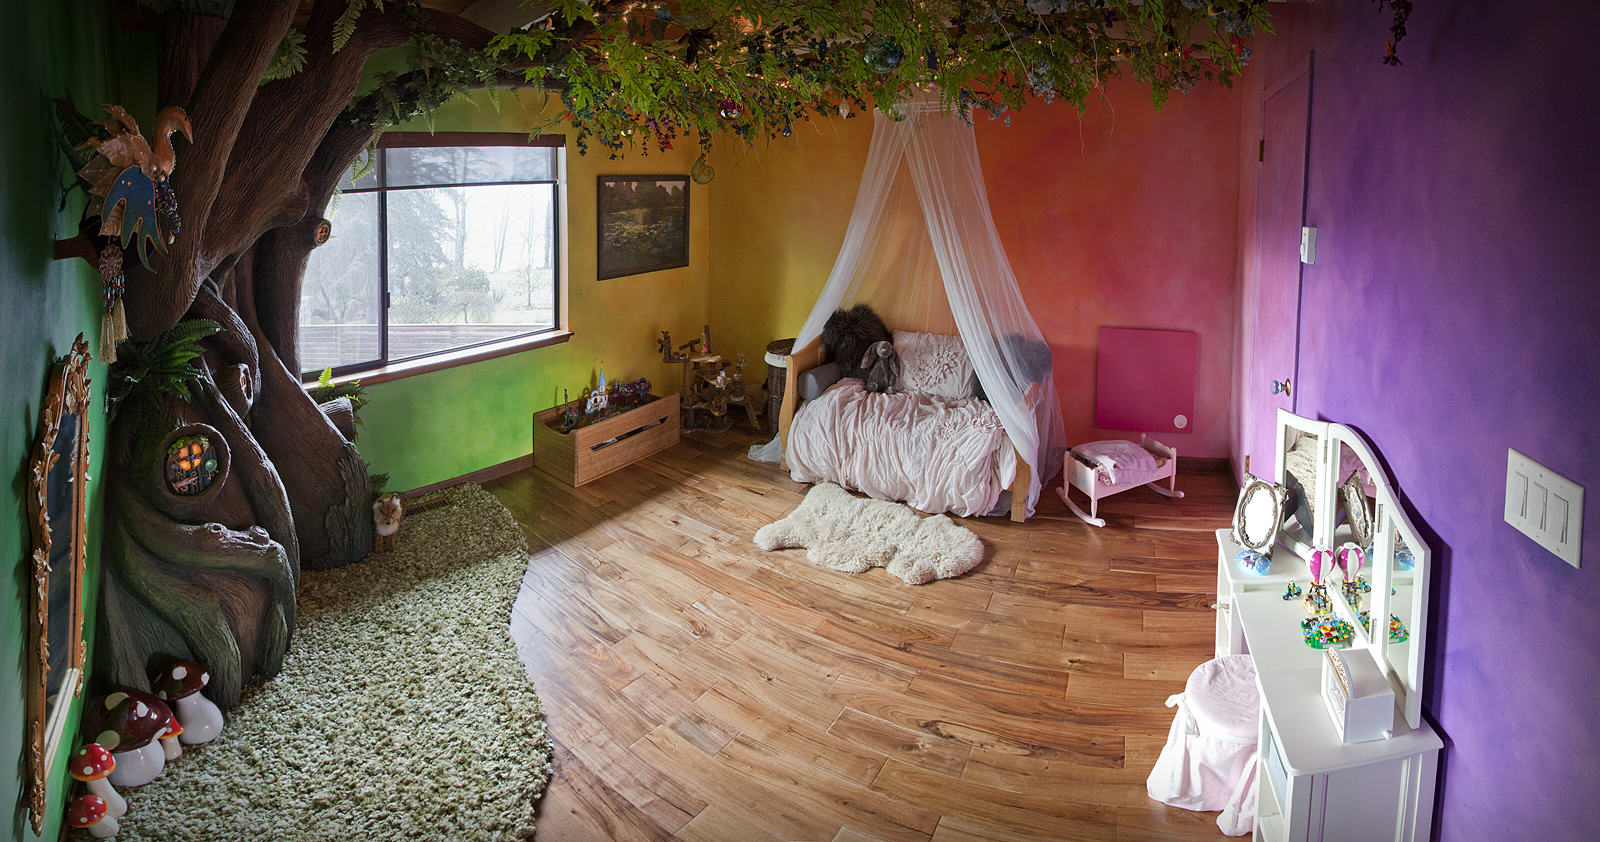 VDGvPhA This Dad Transformed His Daughters Bedroom Into A Magical Treehouse Kingdom